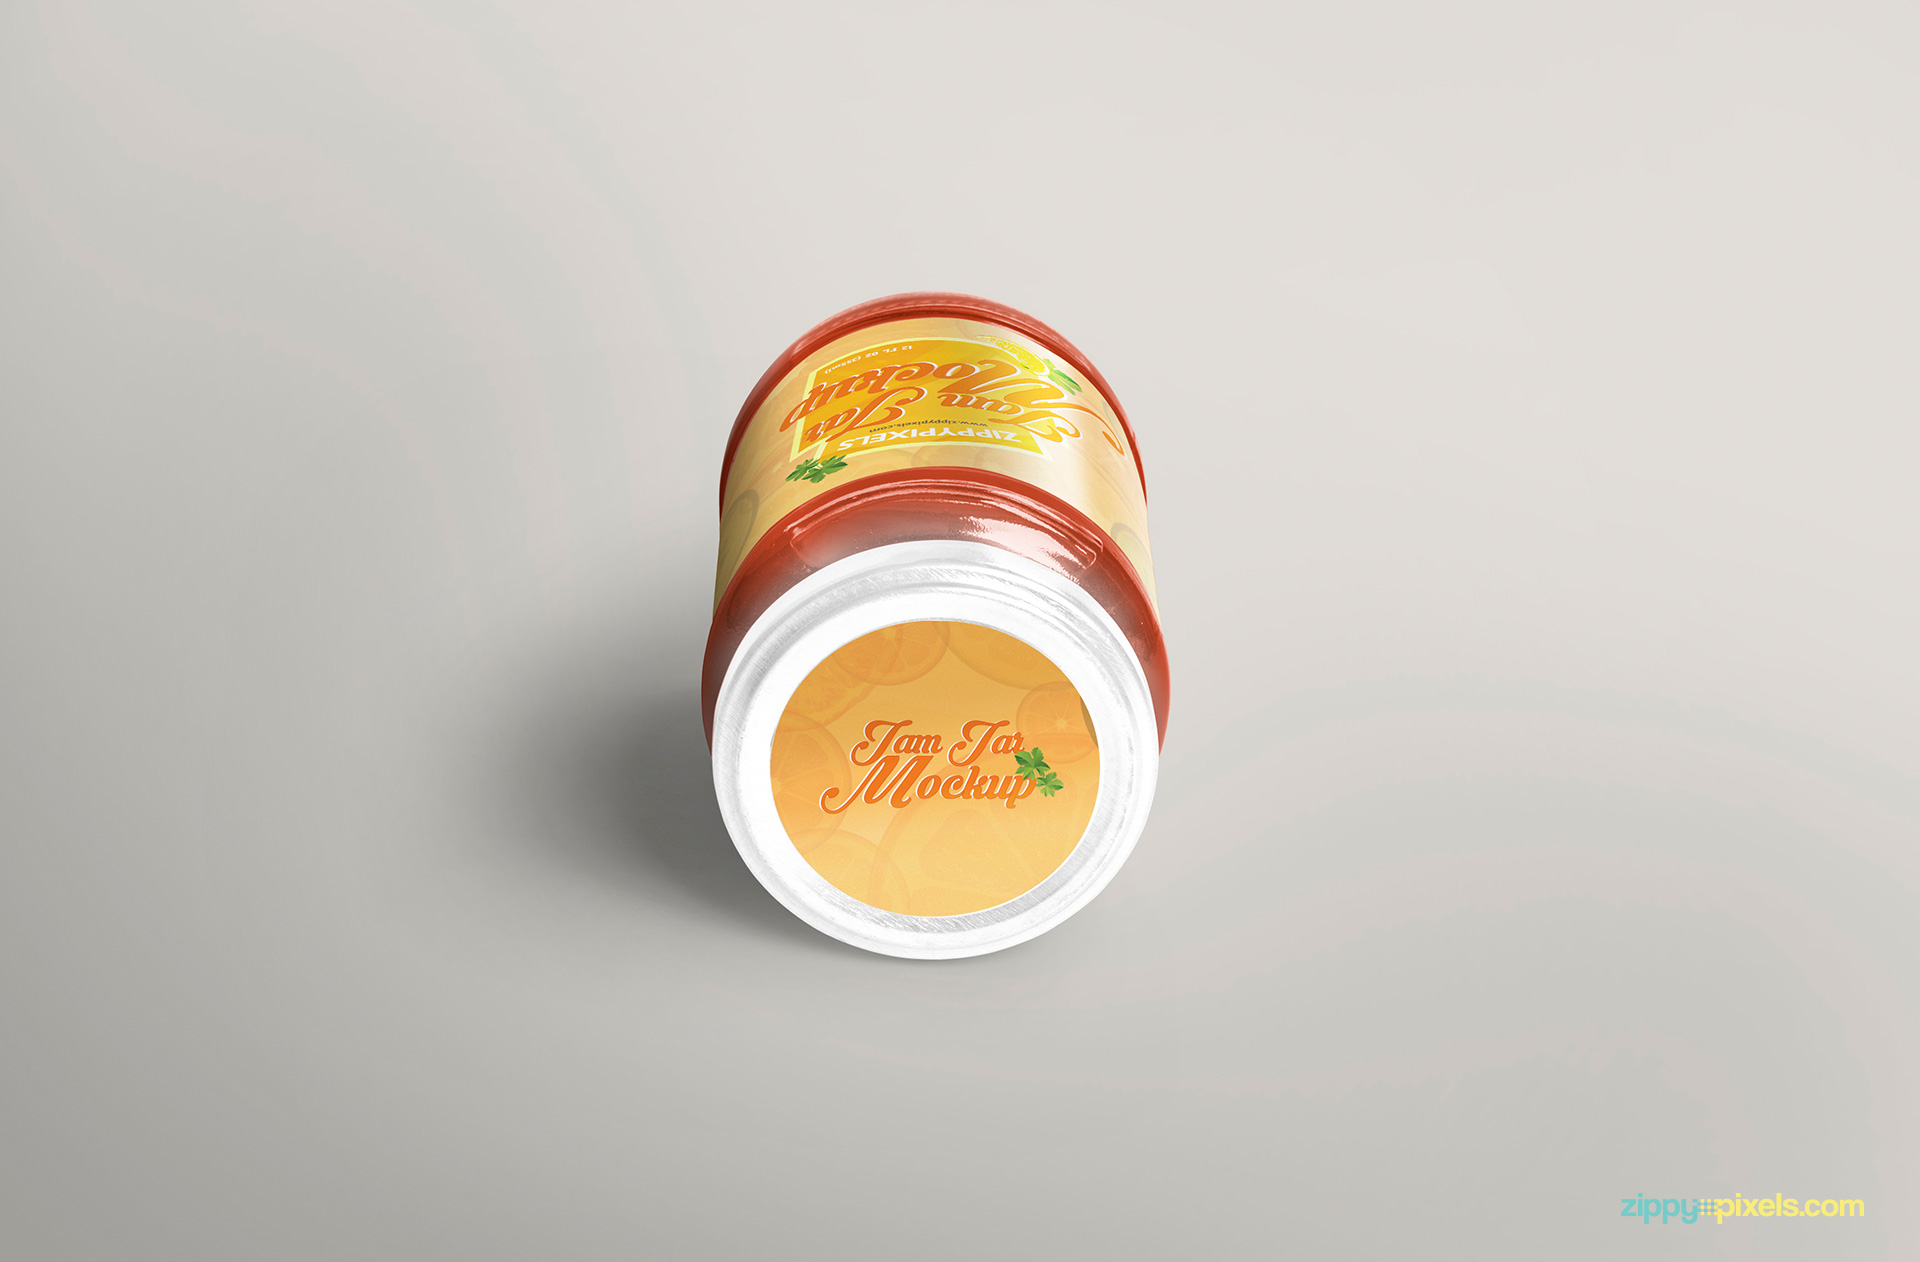 jam-jar-mockup-design-on-cap